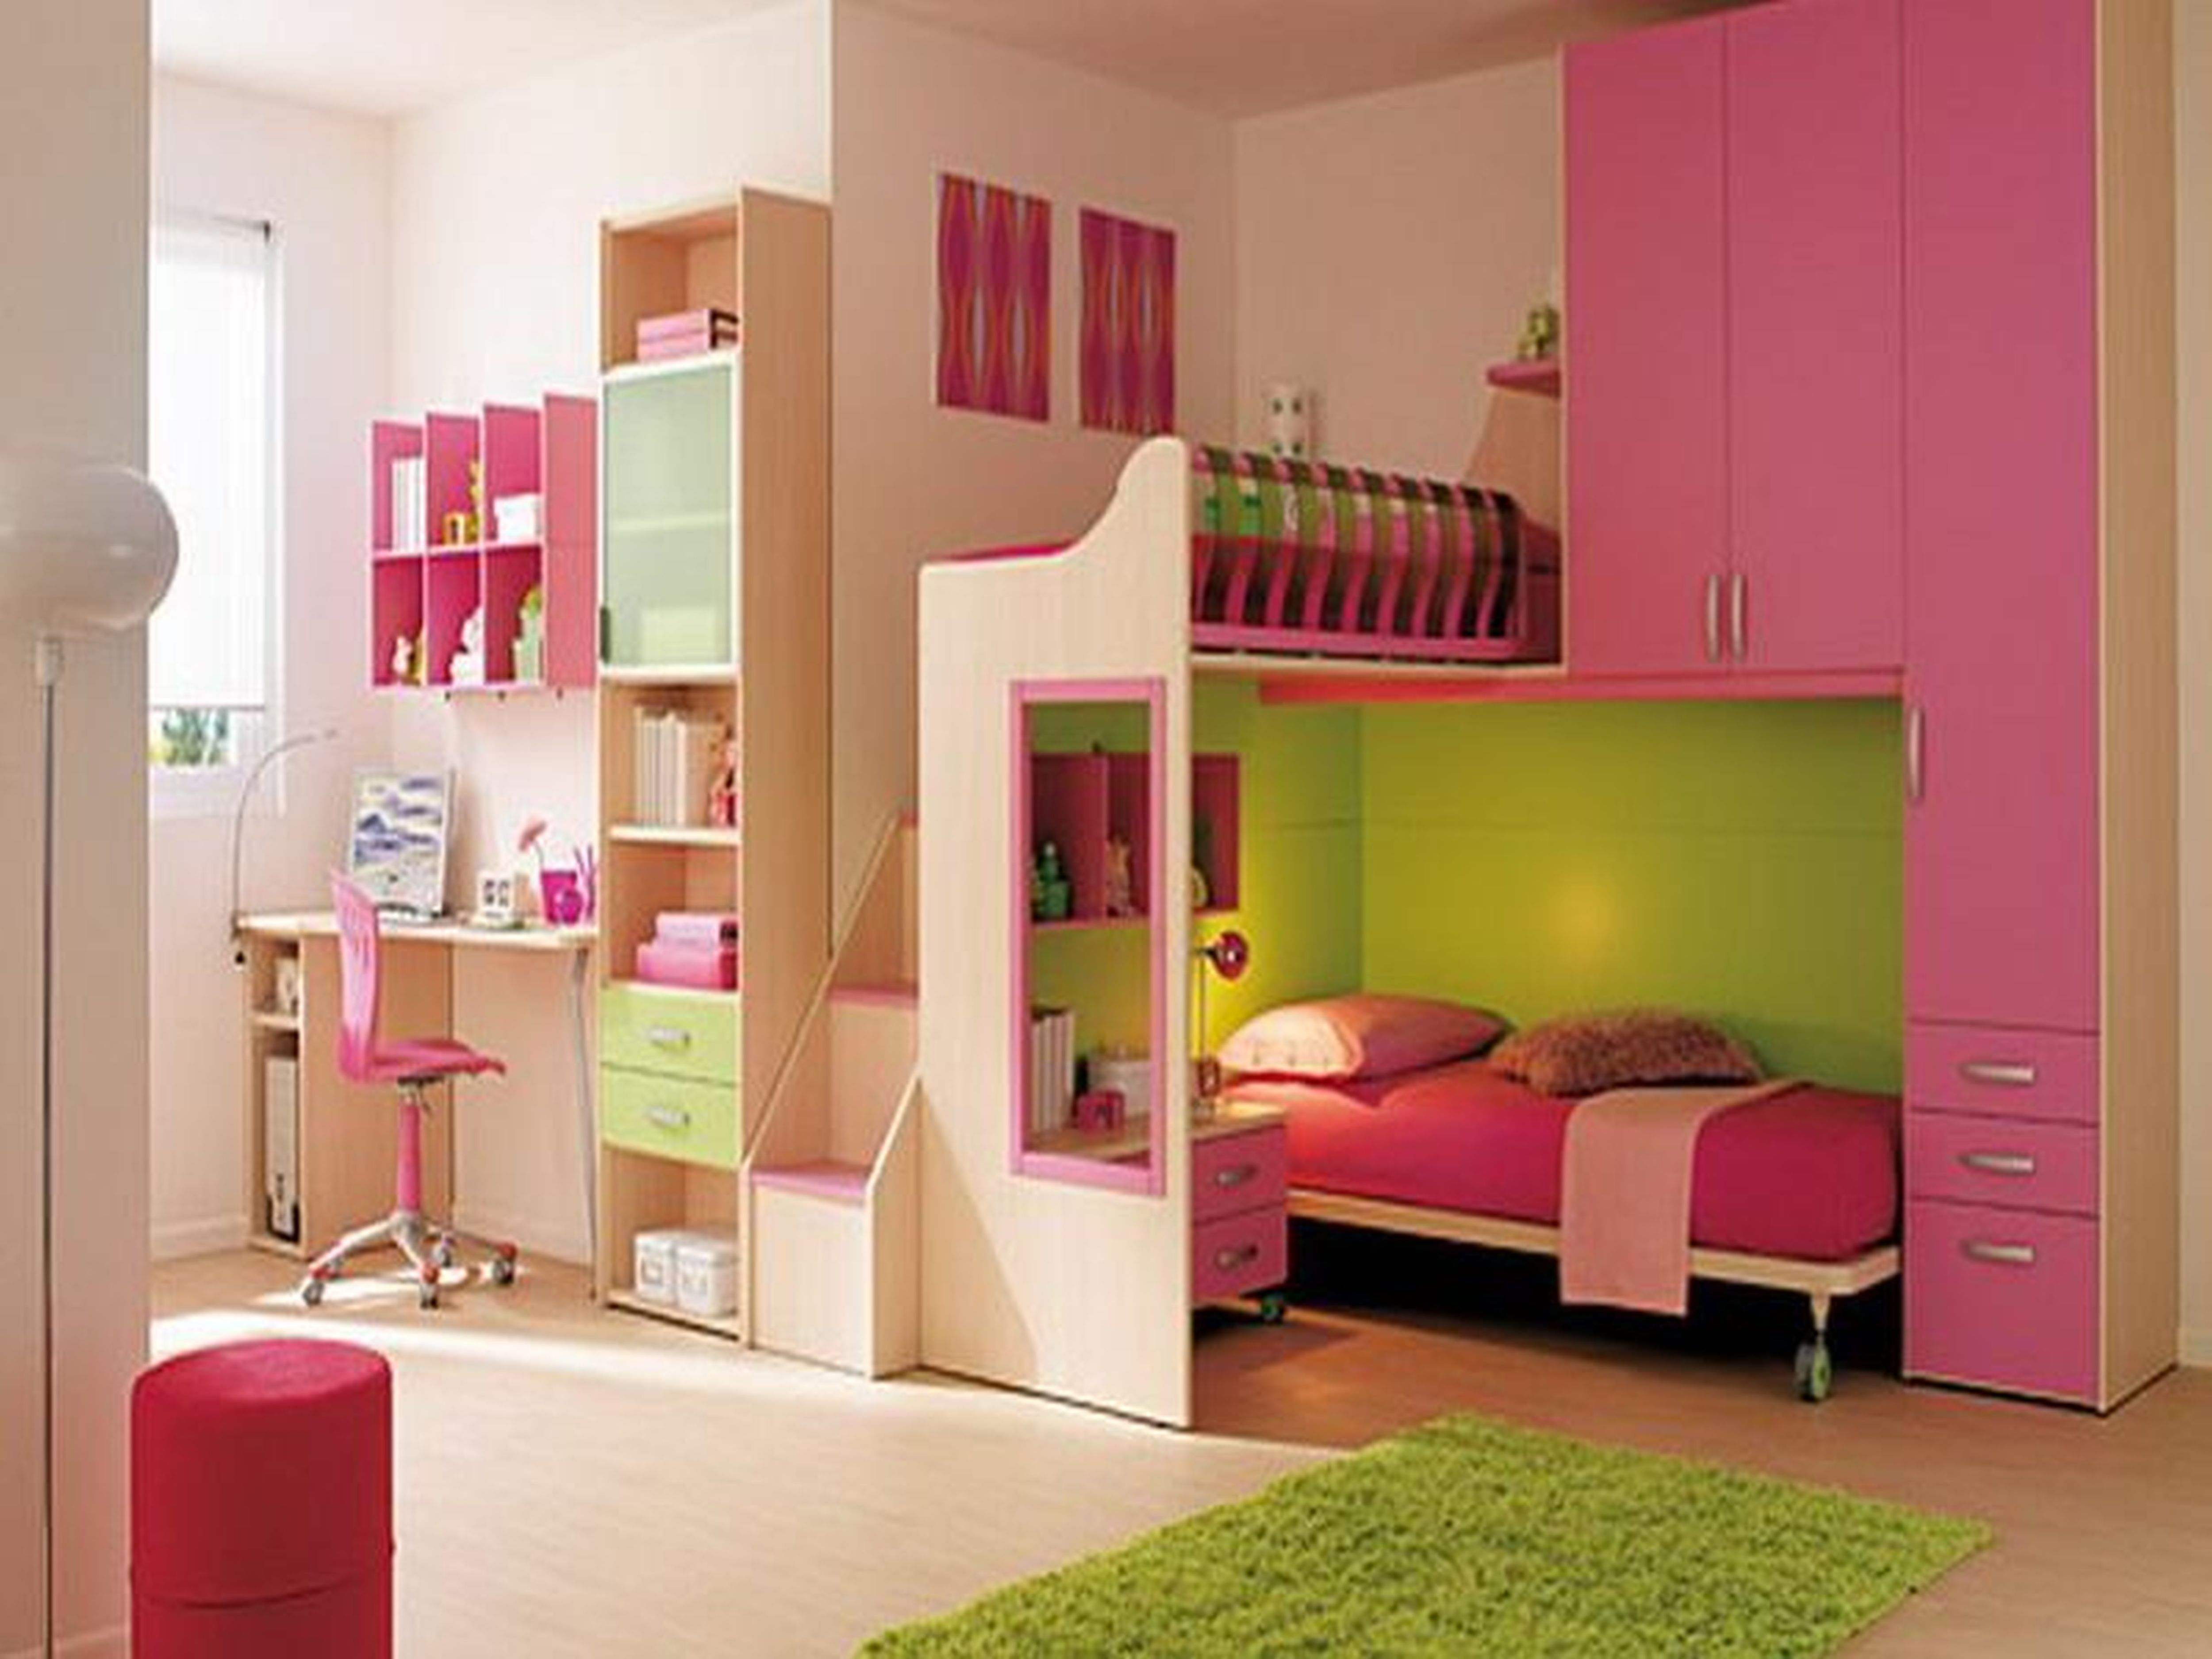 Bedroom Cool Design Little Girls Bedroom Ideas Cool Space Saving Furniture For Pink Lime Green An Little Girl Bedrooms Girls Room Design Kids Bedroom Designs